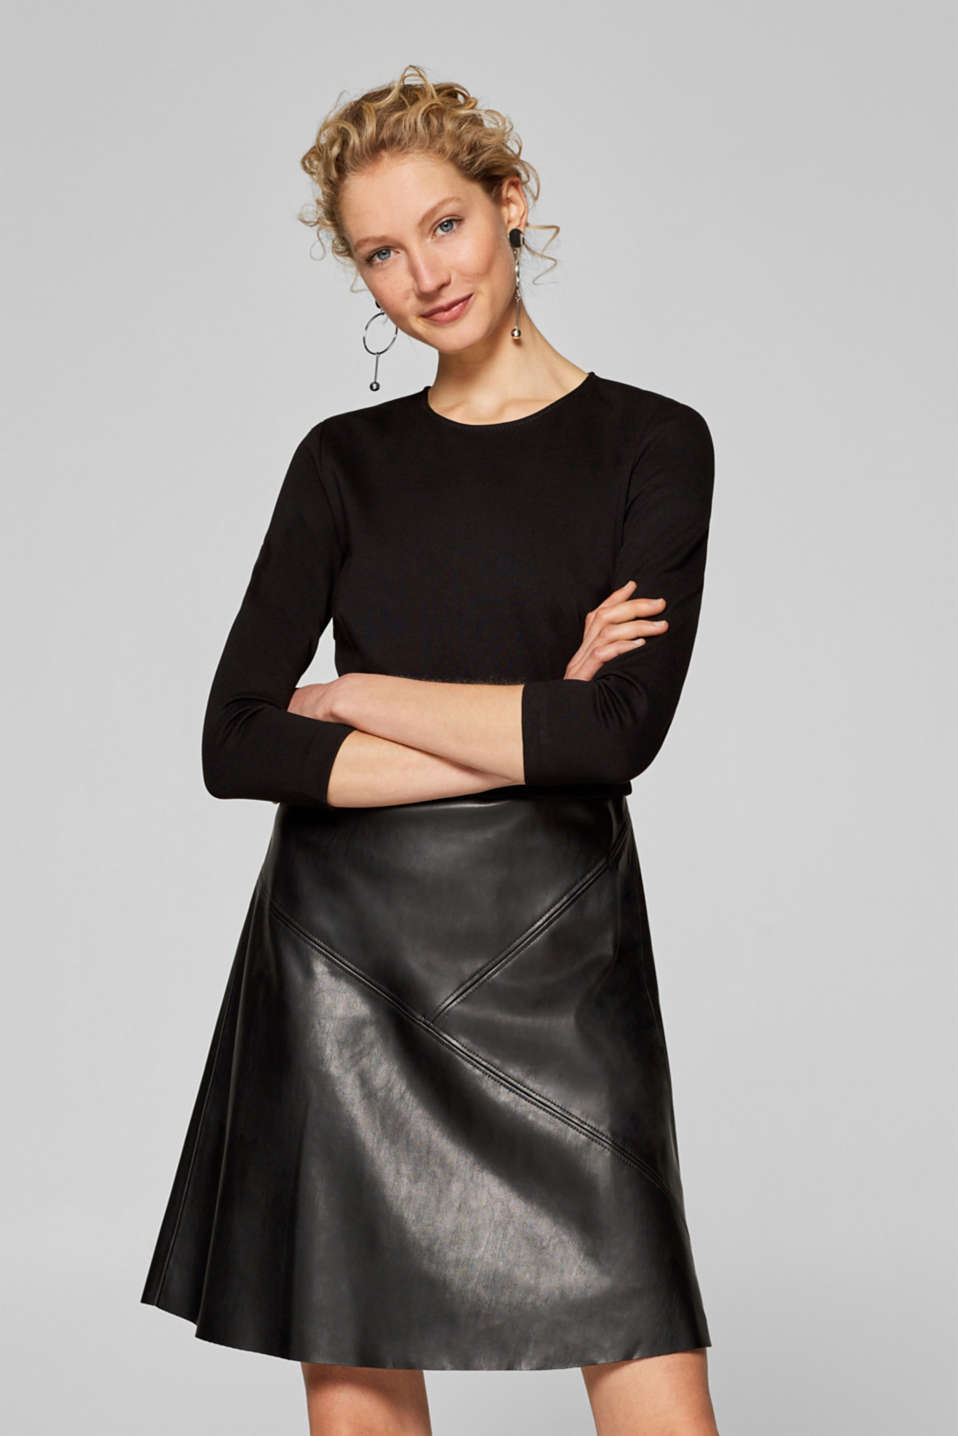 Esprit - Dress with a flared faux leather skirt